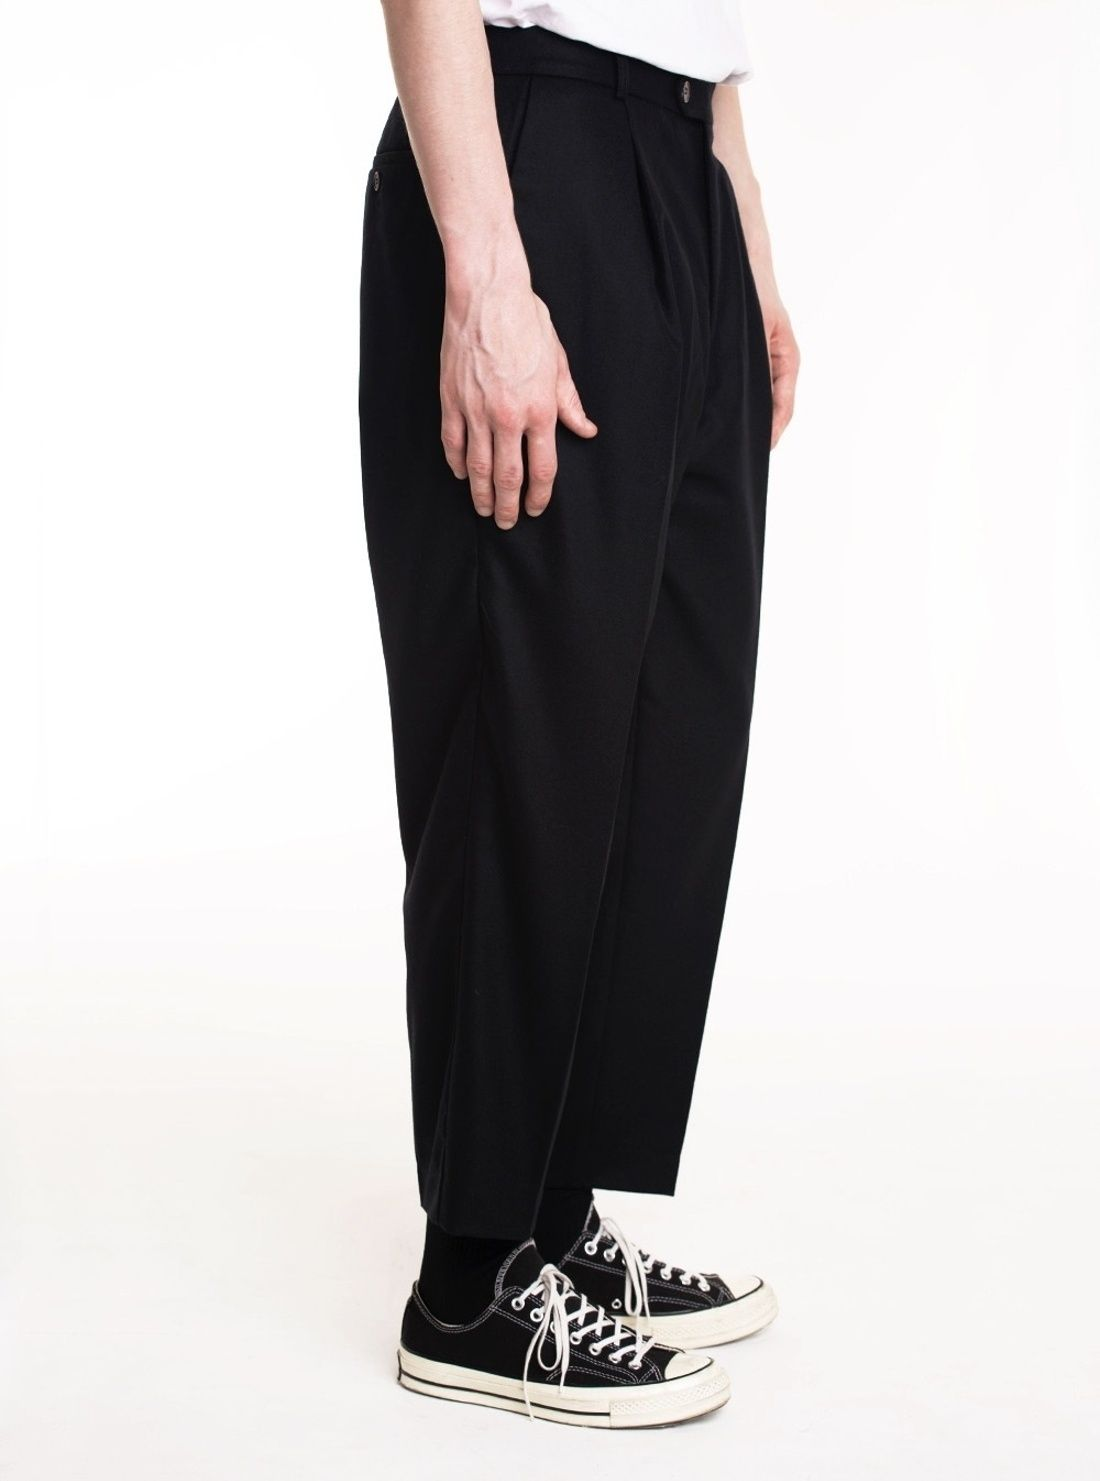 Lownn Neo Flannel Black Wide Leg Pant Size 28 $250 - Grailed